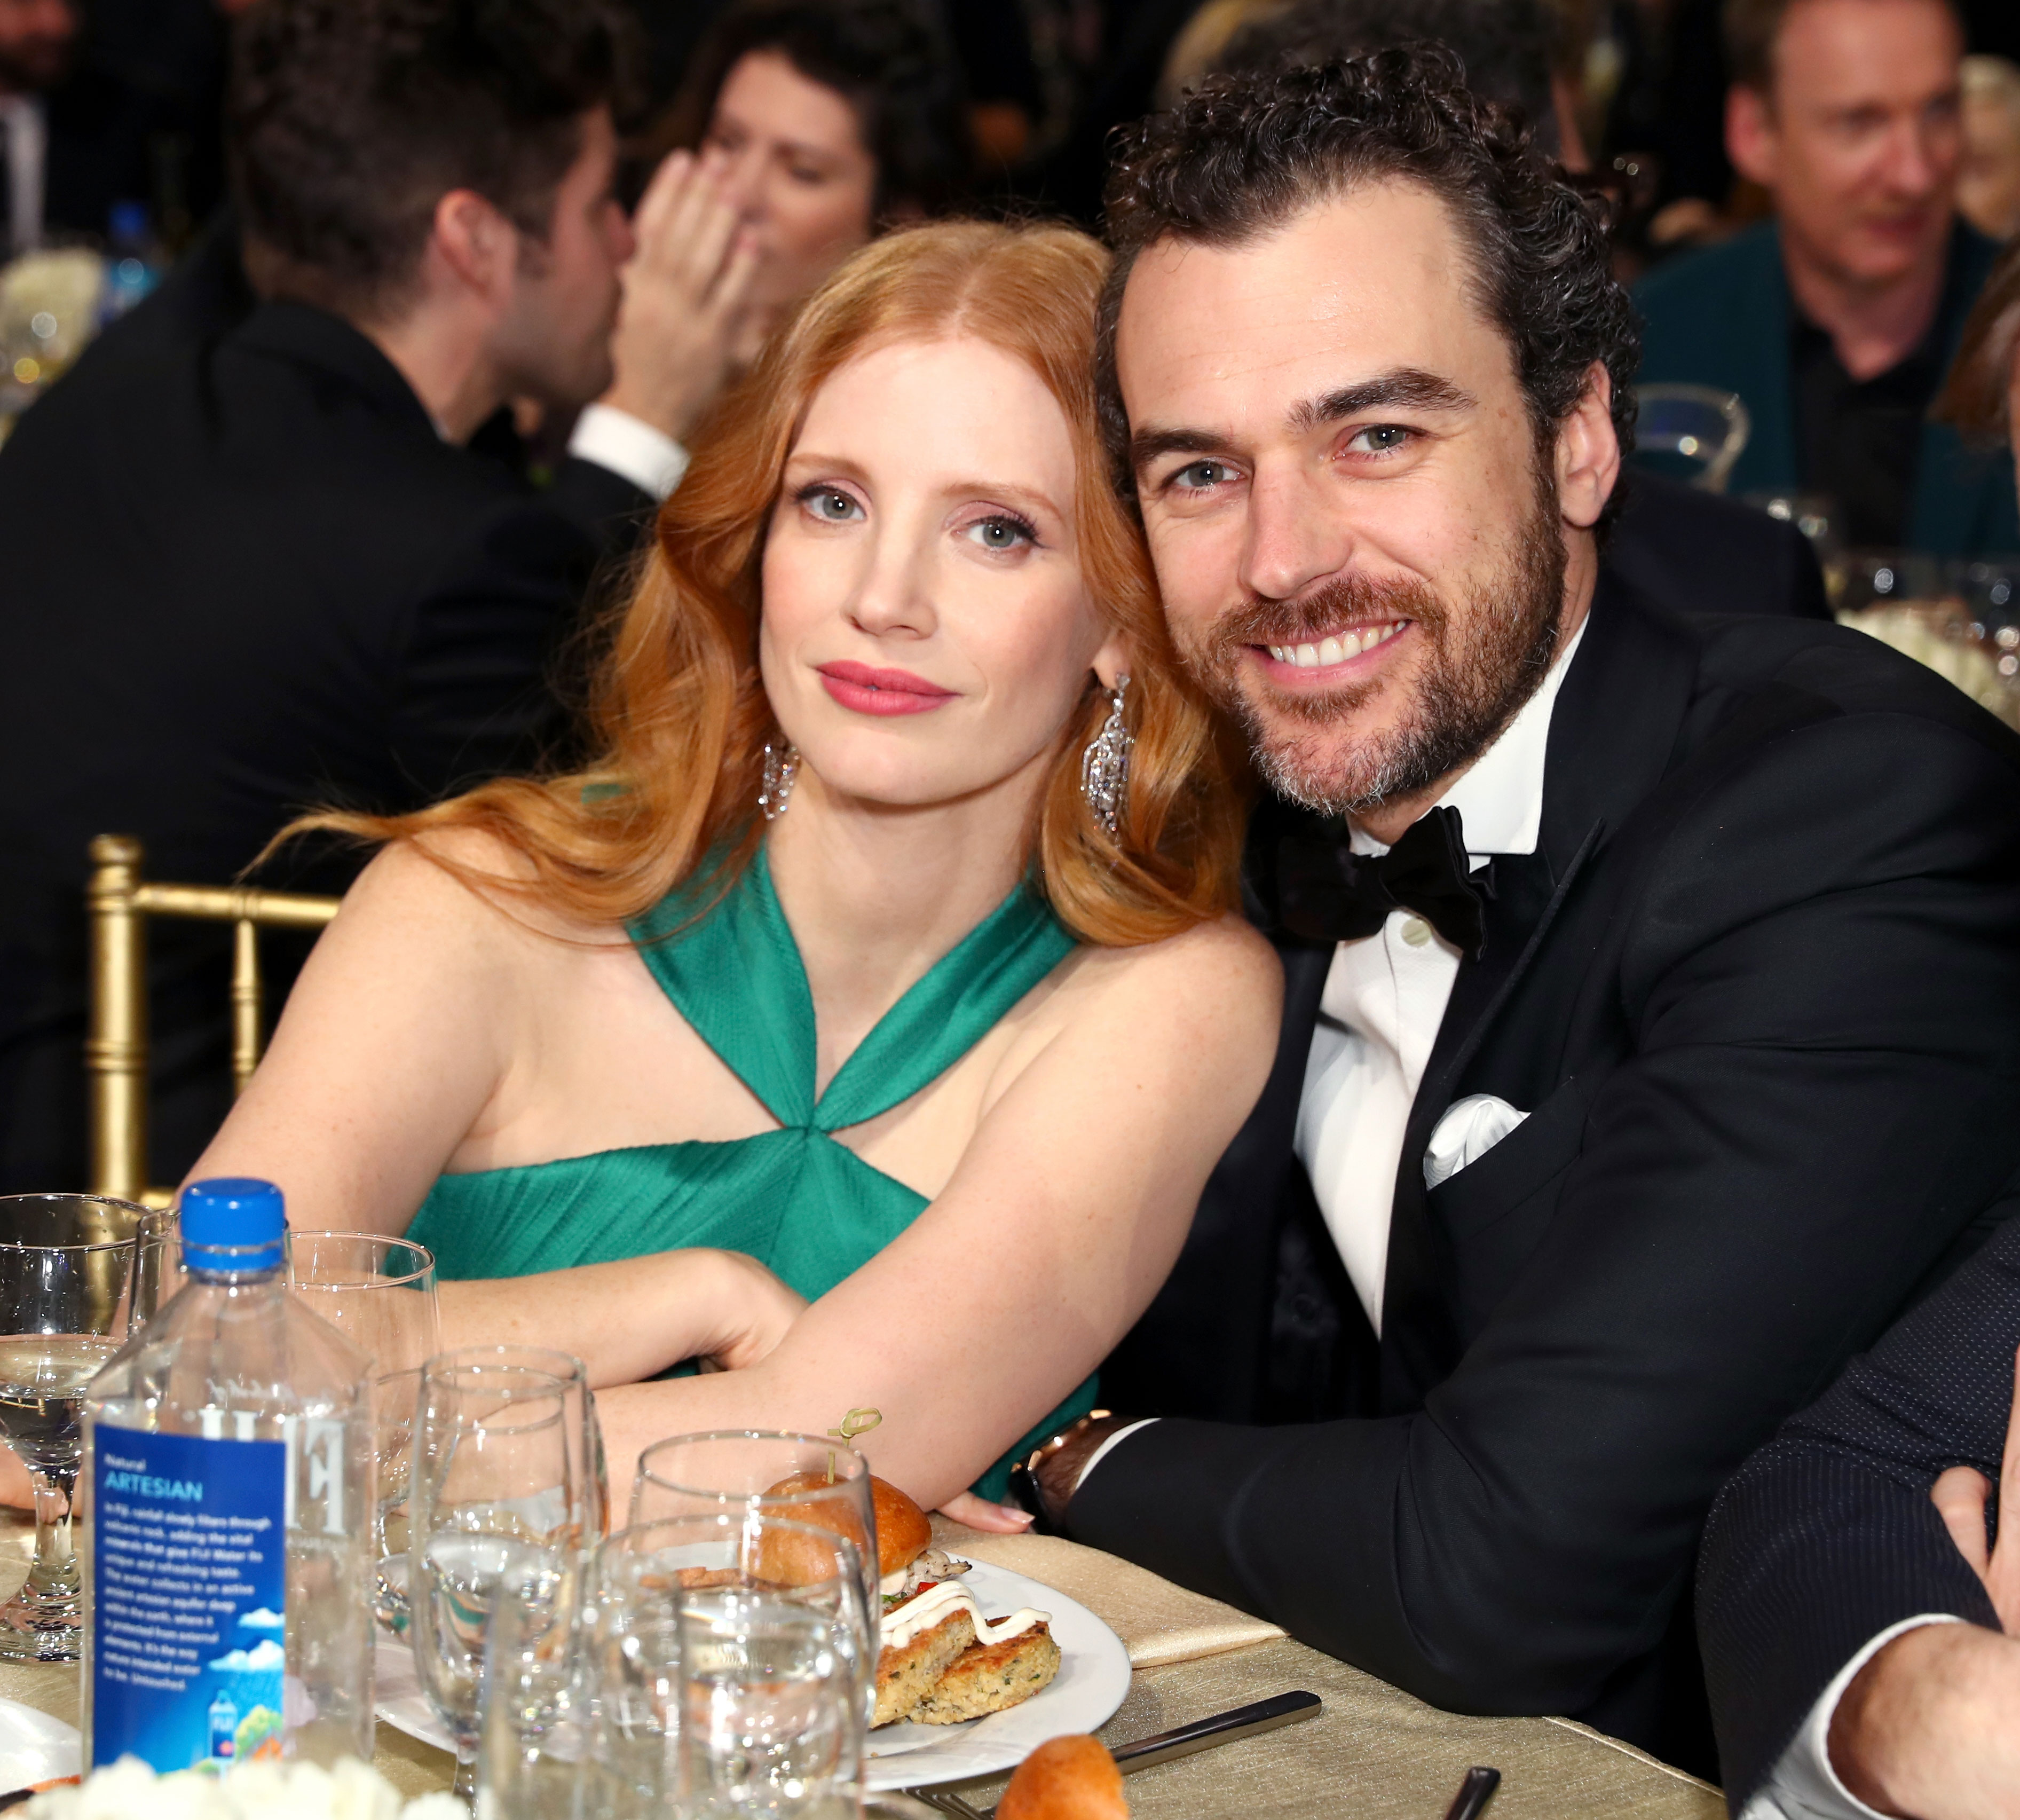 Jessica Chastain Gian Luca Passi de Preposulo - In November 2018, an Us source revealed the two-time Oscar nominee had secretly welcomed a baby with her husband, weeks after she was spotted with a baby stroller on the Boston set of an upcoming movie.